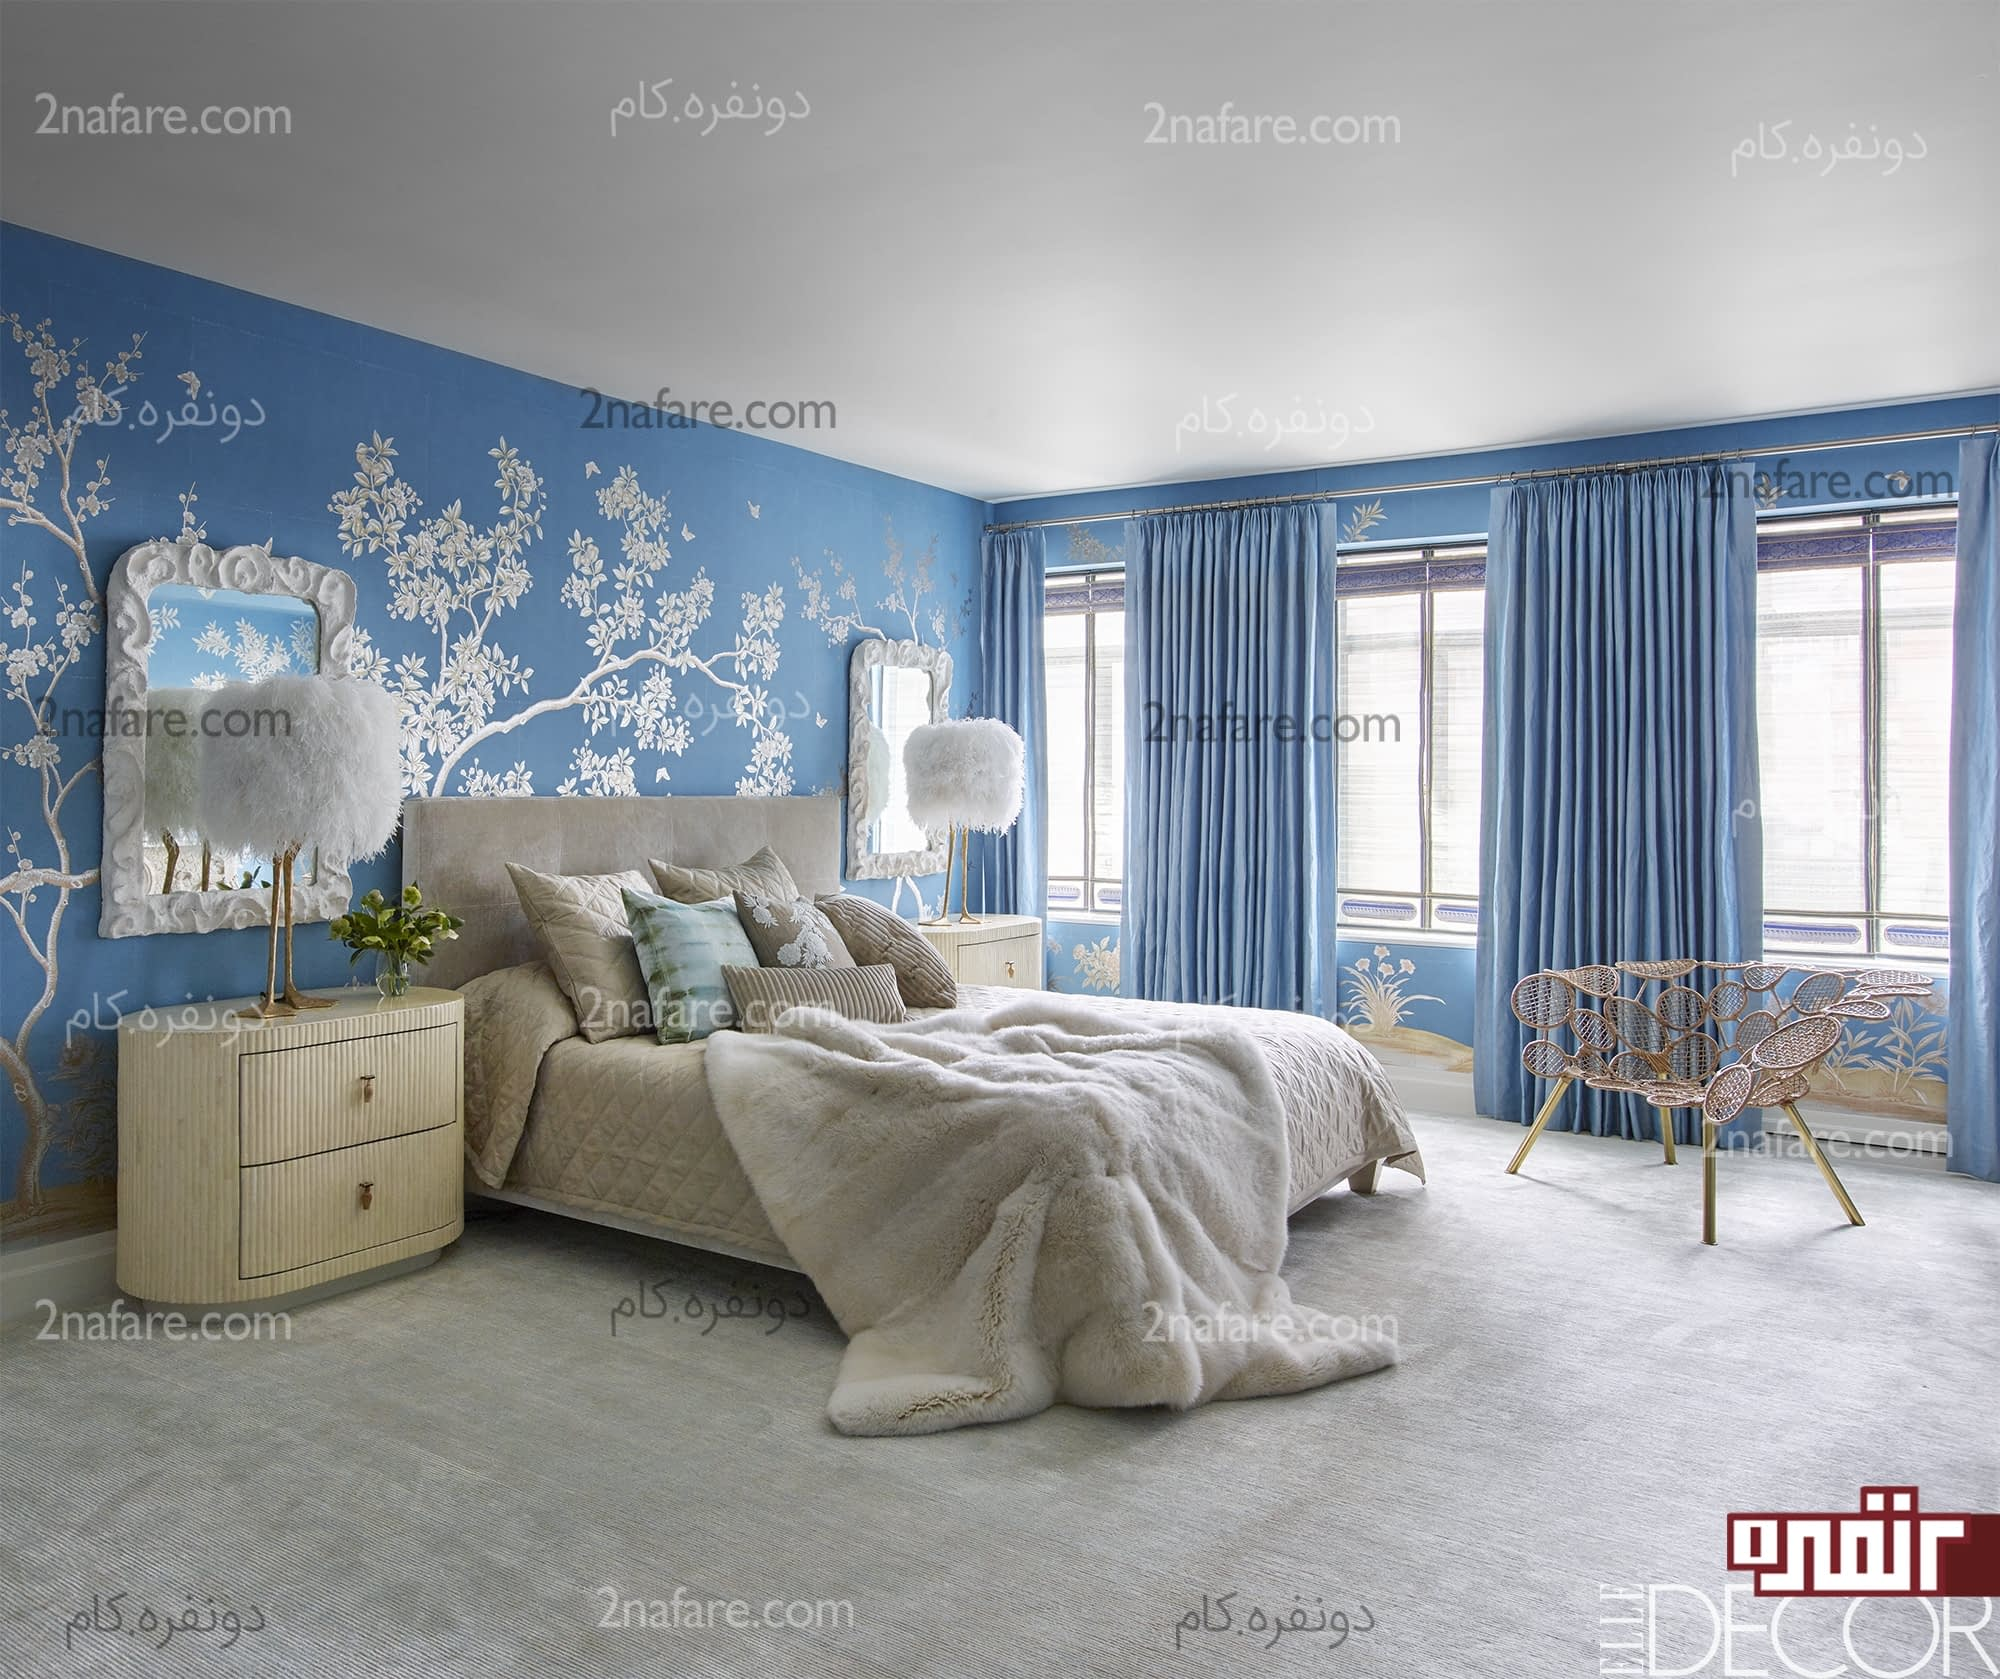 Light Grey Blue Bedroom Images Of Black Bedroom Furniture Bedroom Wallpaper And Curtains To Match Bedroom Bay Window Curtain Ideas: چگونه رنگ اتاق خواب رو انتخاب کنیم؟ €� دونفره